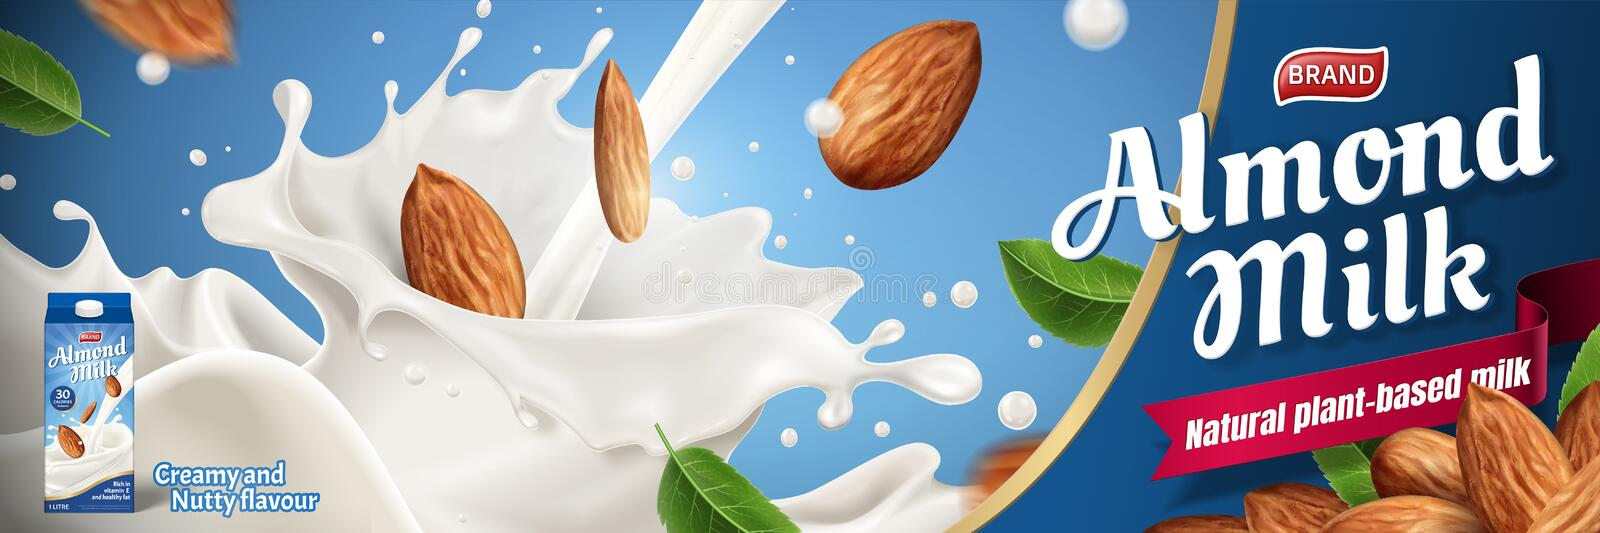 Almond milk ads. With splashing liquid and seeds on blue background in 3d illustration royalty free illustration